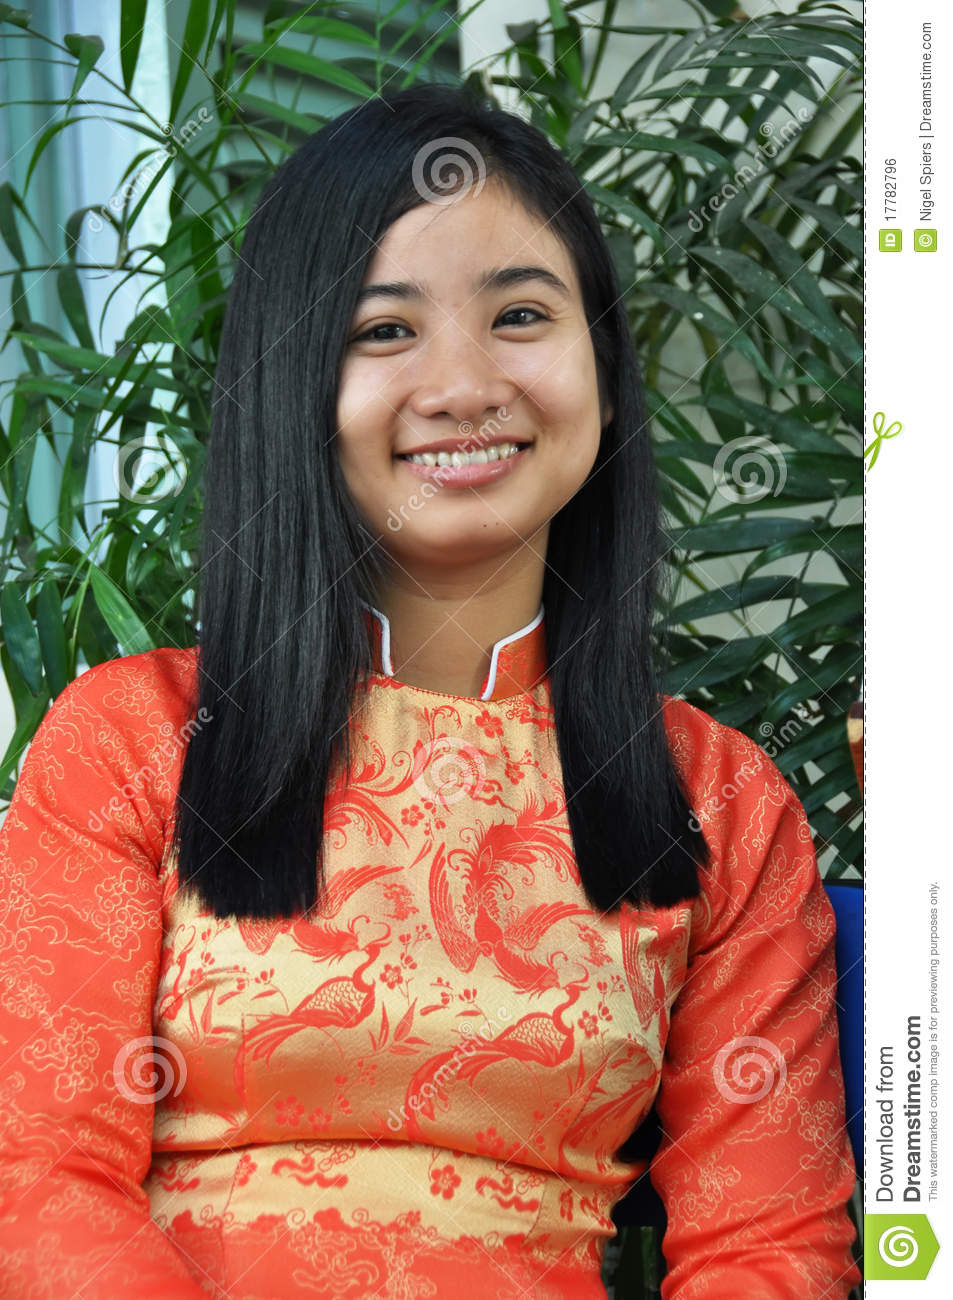 ho chi minh city asian girl personals Ho chi minh city (saigon) is the business and financial hub of vietnam, with a prominent history going back hundreds of years the khmers originally settled the region, with the vietnamese taking over in the 17th century.